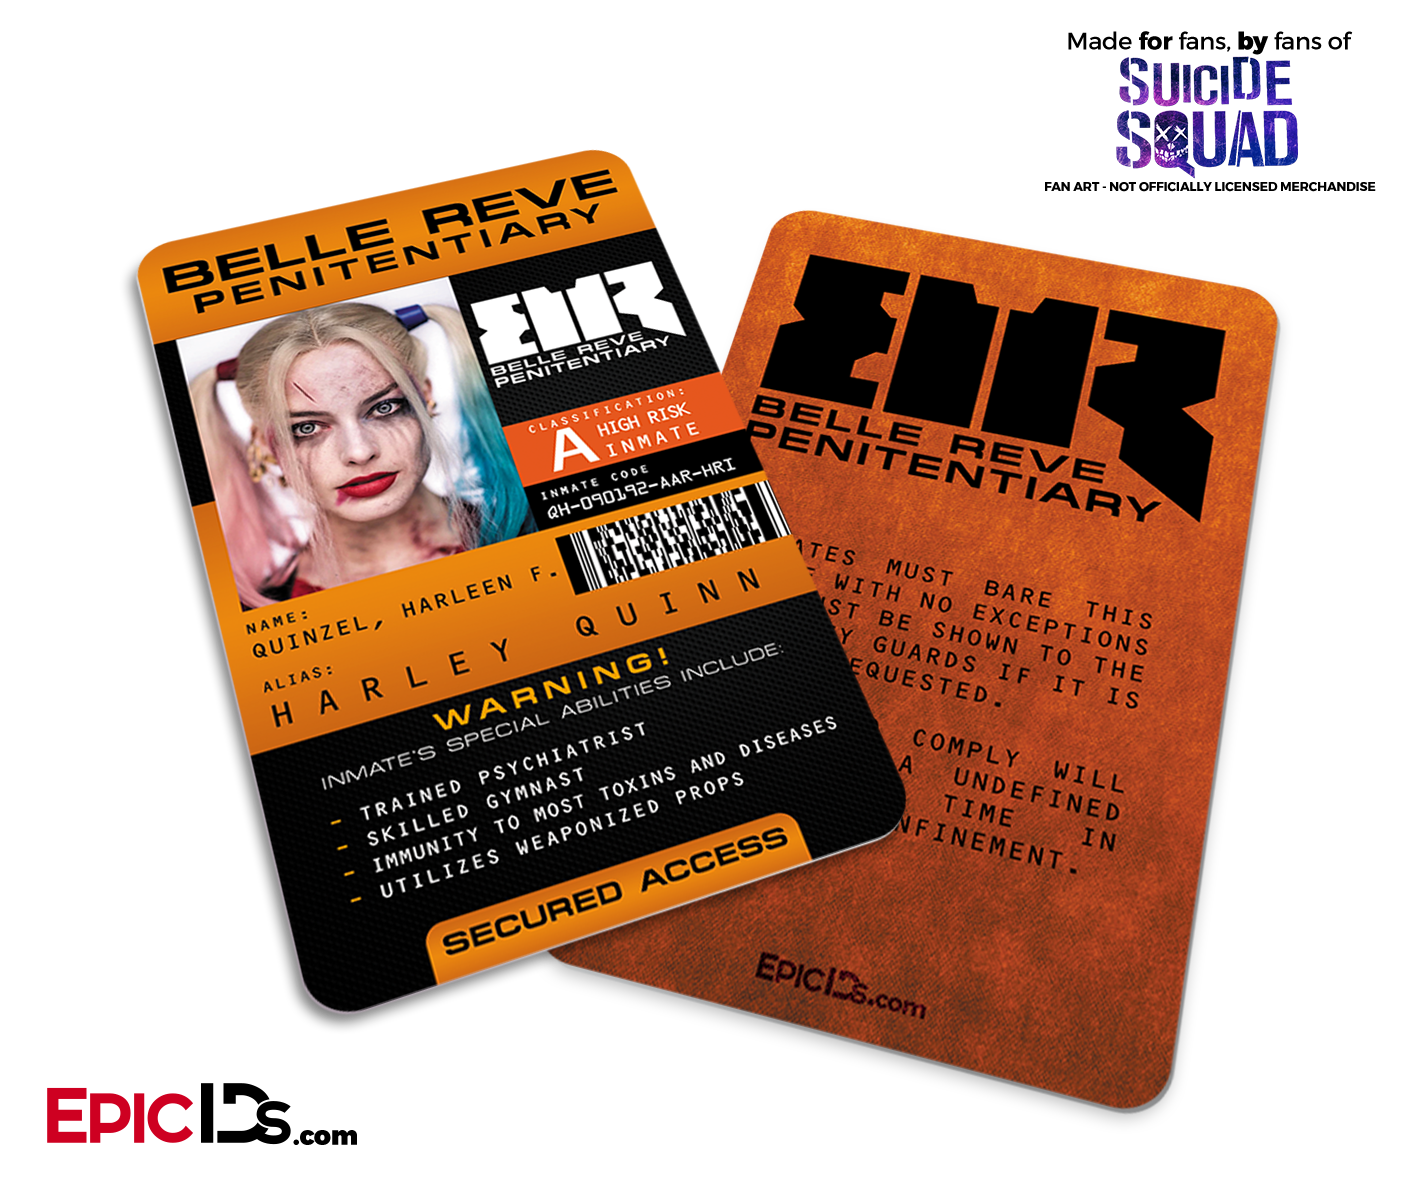 Belle Reve Penitentiary Suicide Squad Inmate ID Card